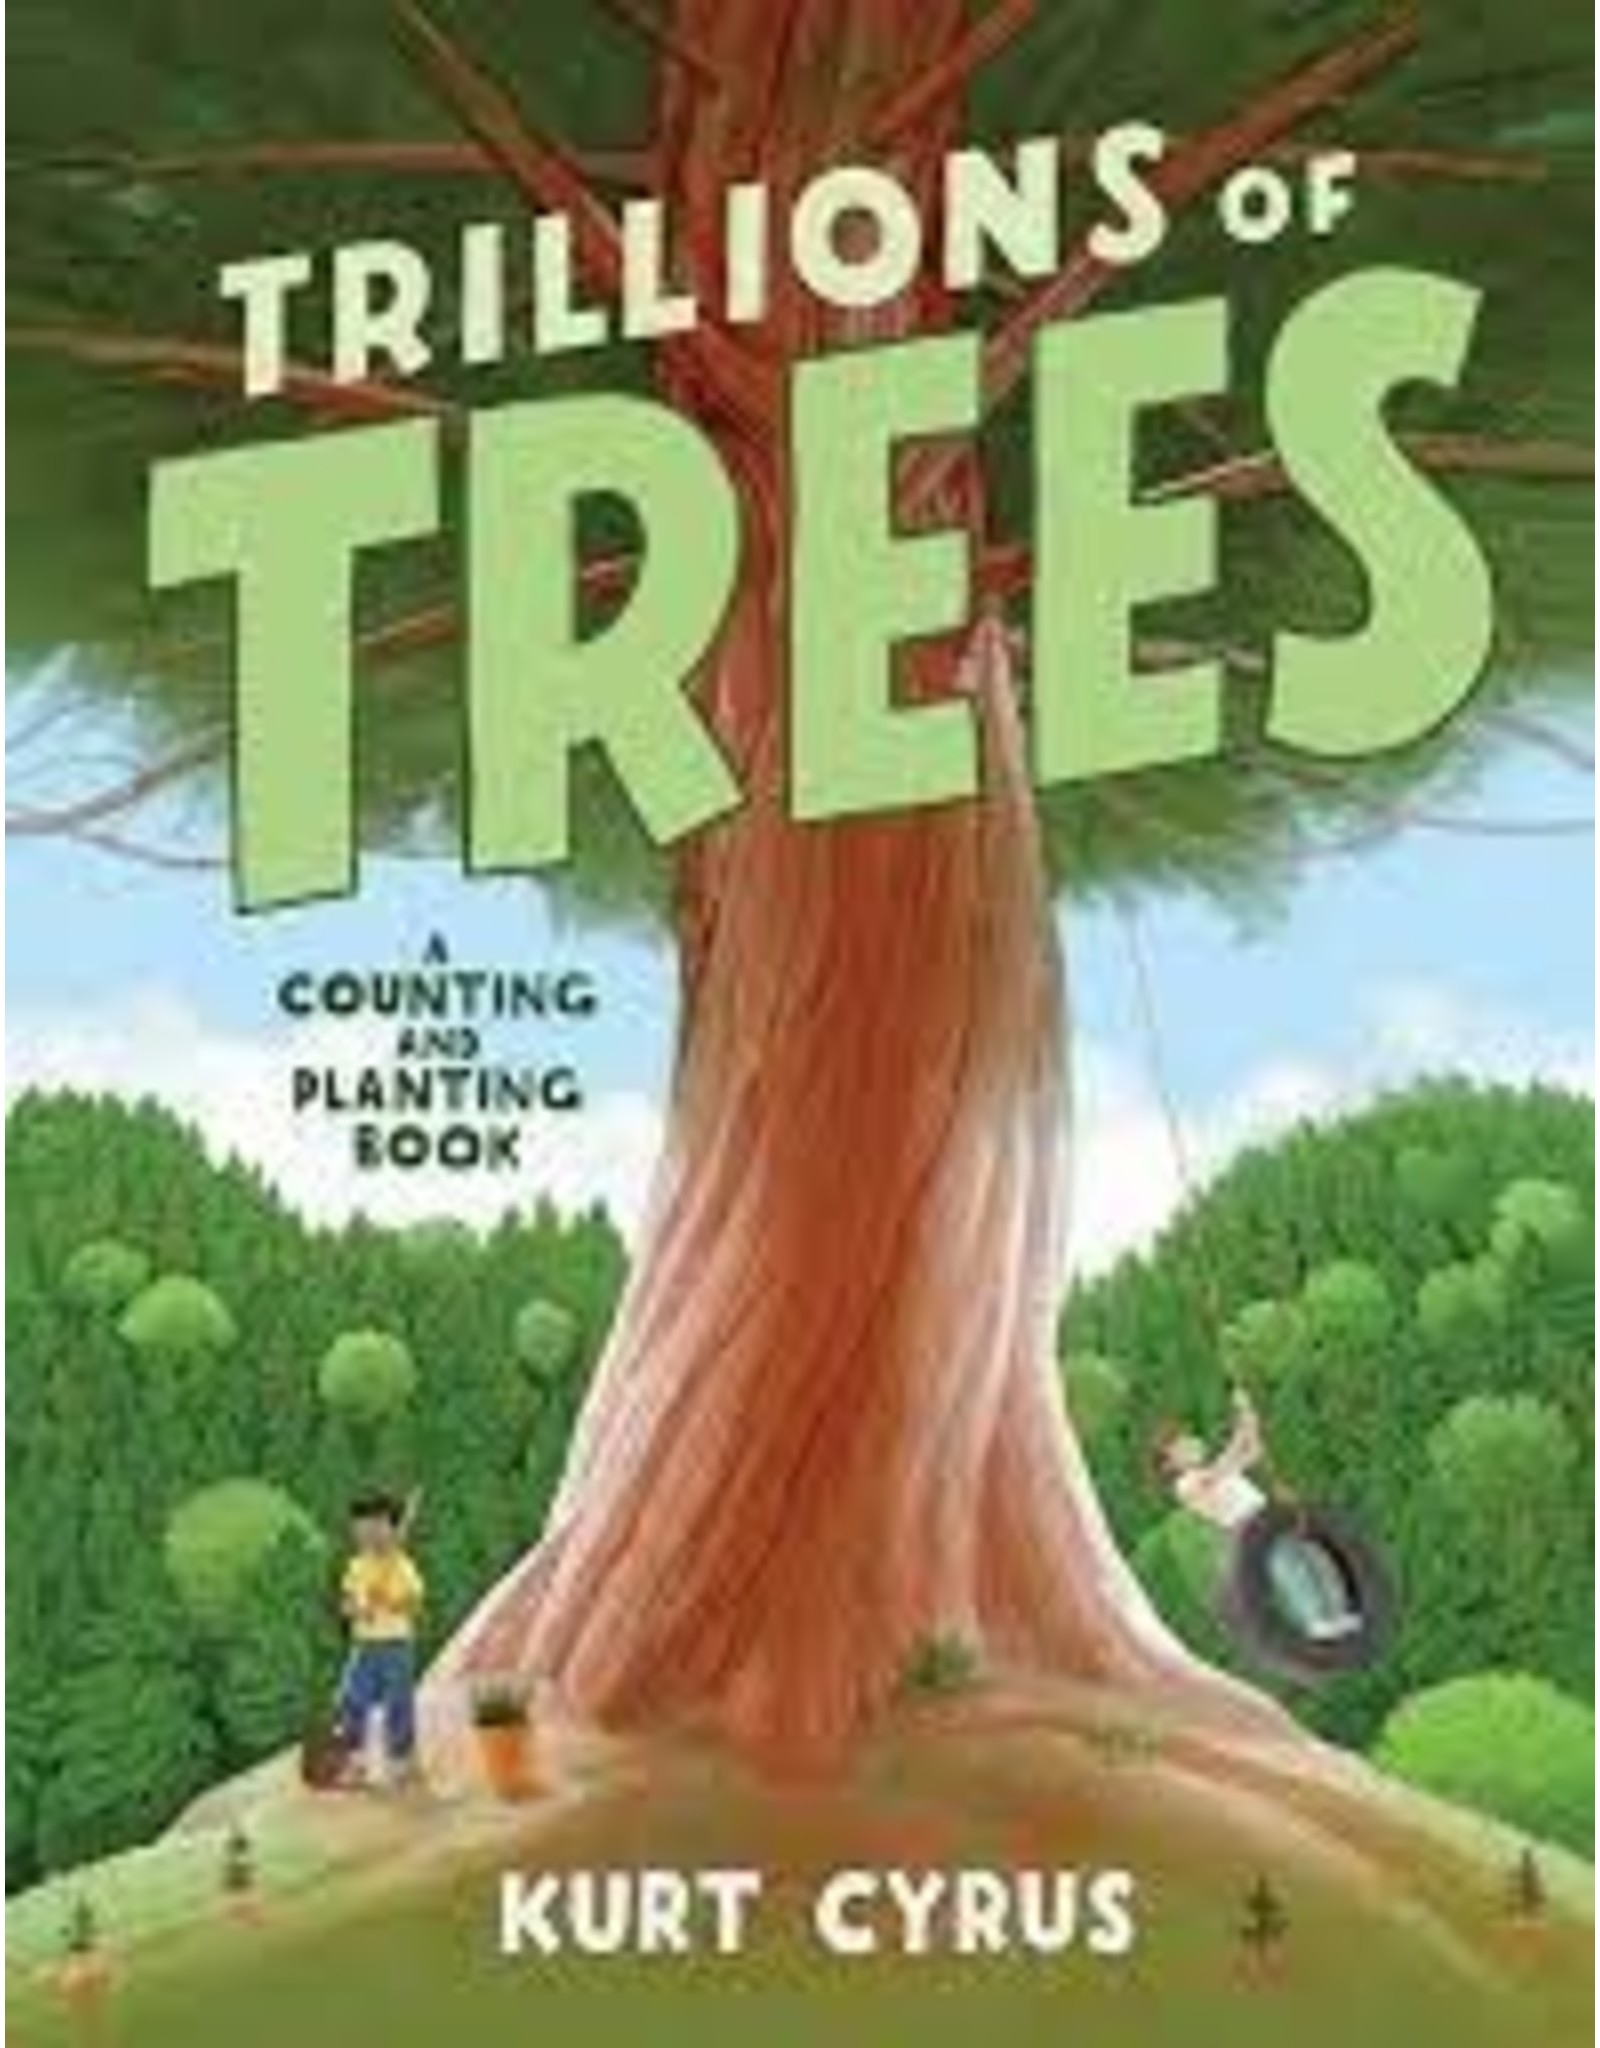 Books Trillions of Trees : A Counting and Planting Book by Kurt Cyrus